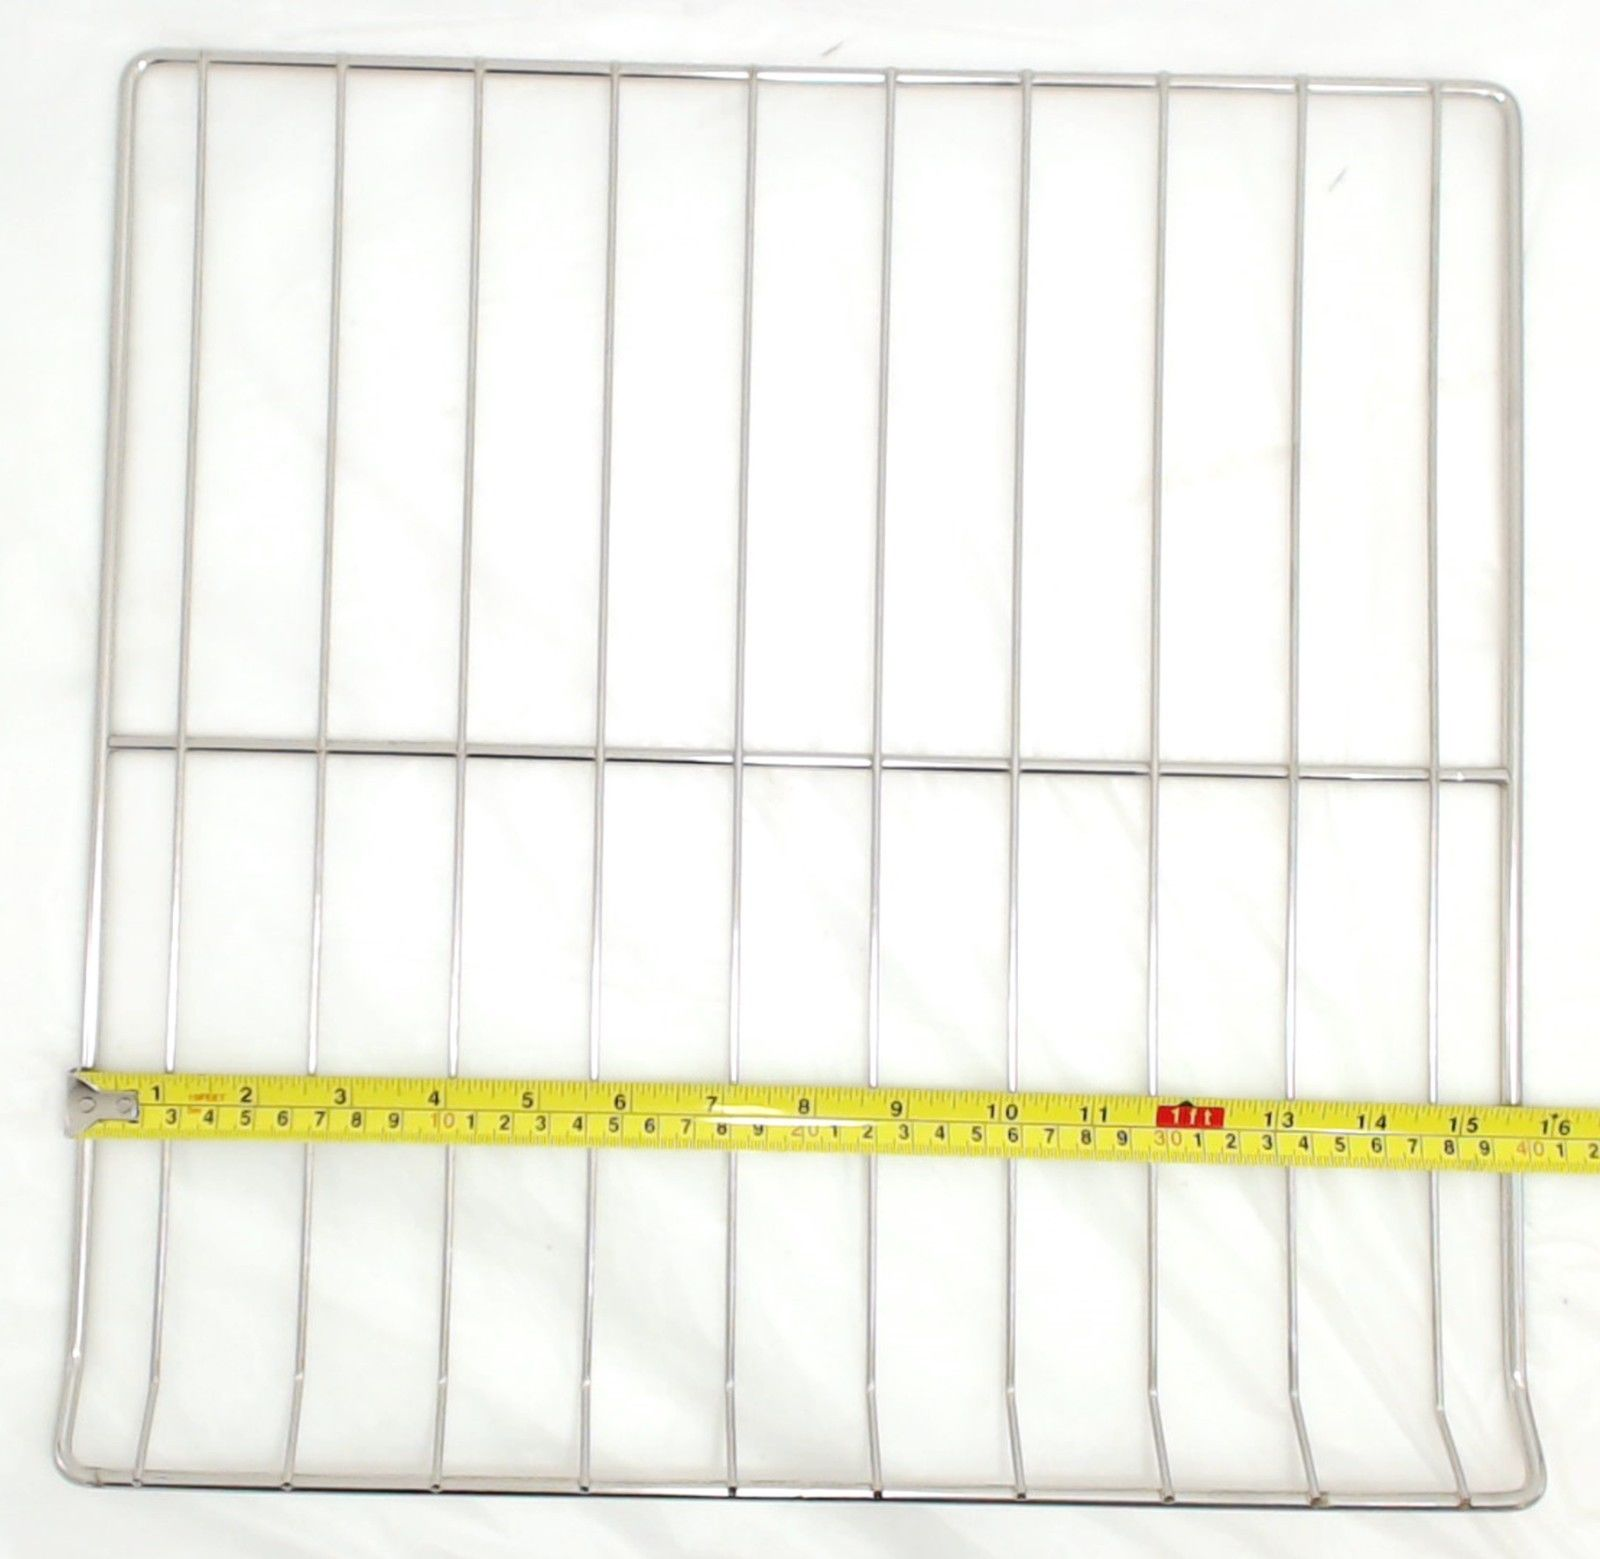 Oven Rack for Frigidaire, Electrolux, AP2143643, PS460838, 5303285927